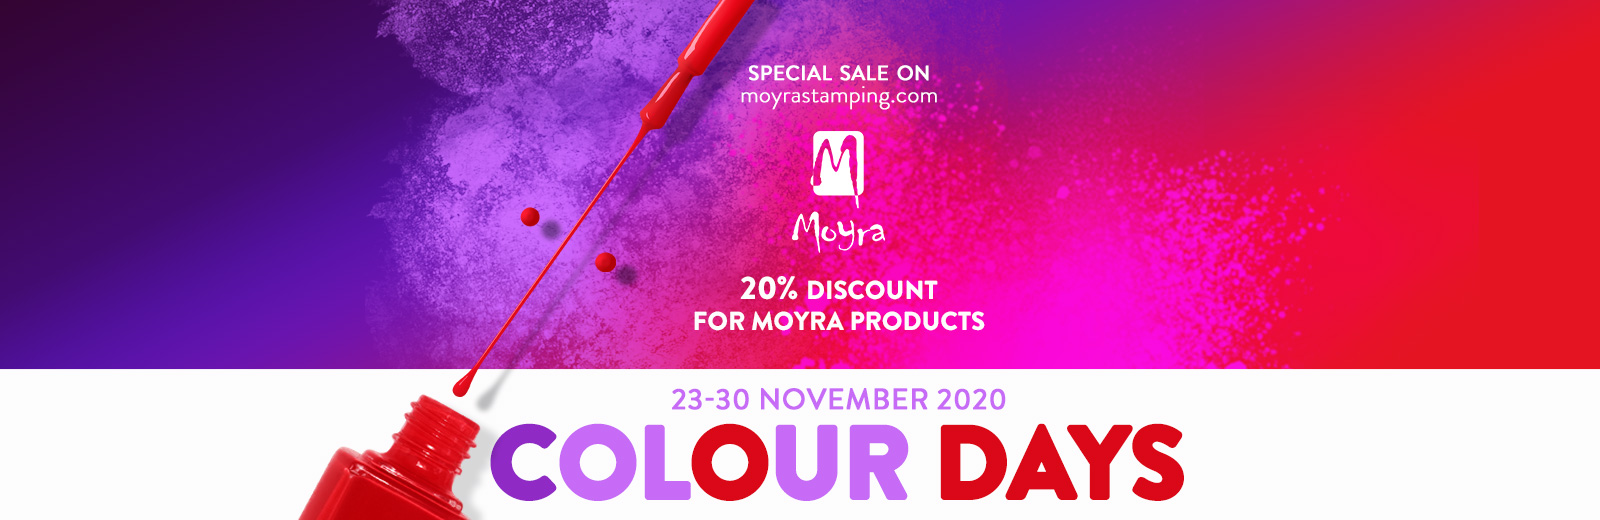 Moyra Colour Days - special sale on moyrastamping.com